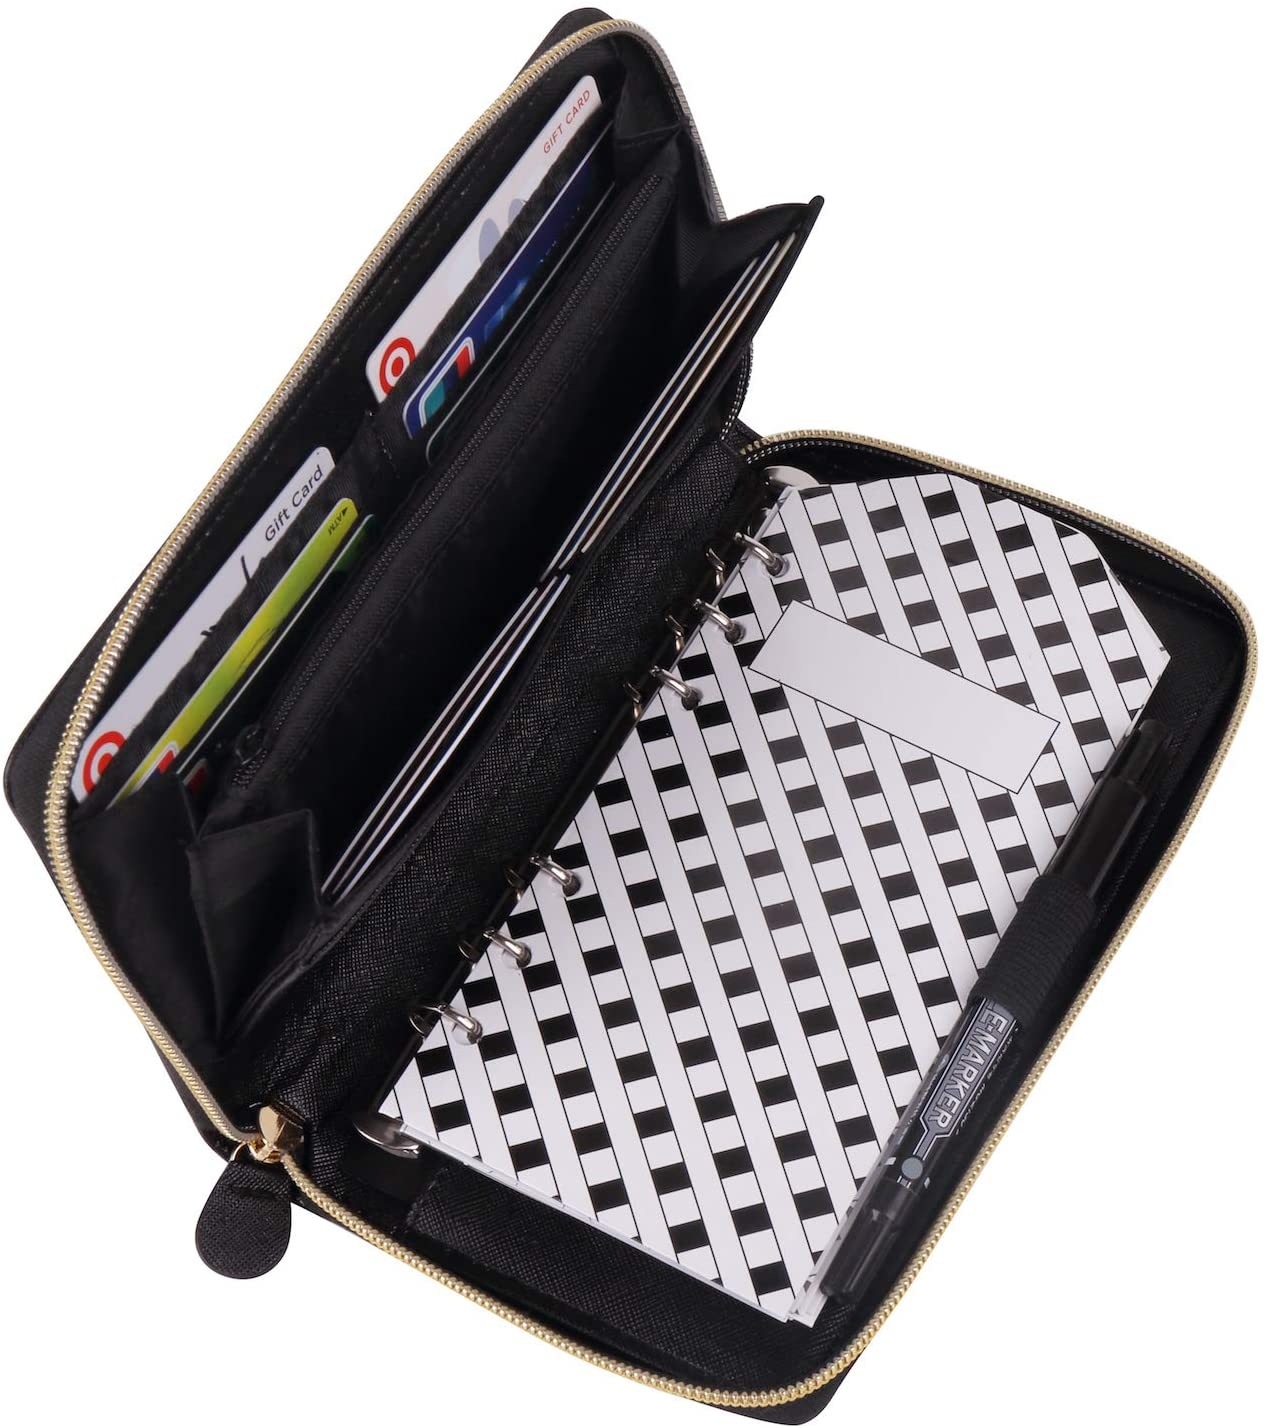 Soligt All-in-One Cash Envelopes Wallet with 12 Budget Envelopes & Budget Sheets - Black